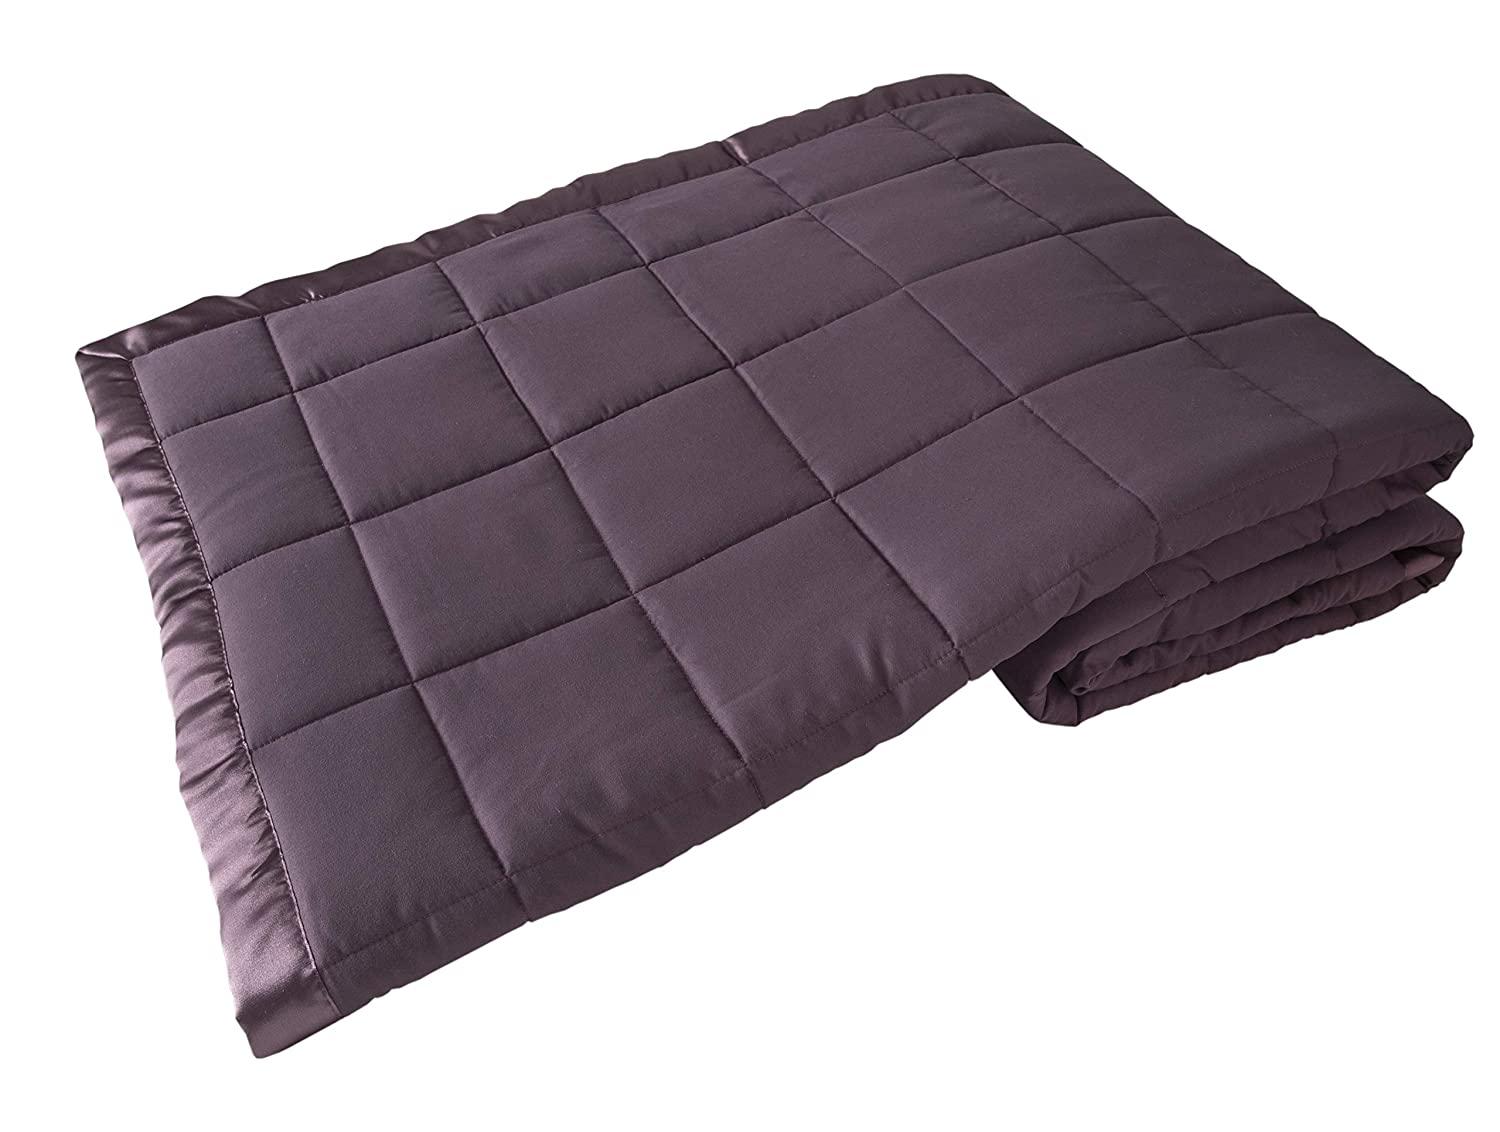 Elite Home Products Down Alternative Solid Blankets